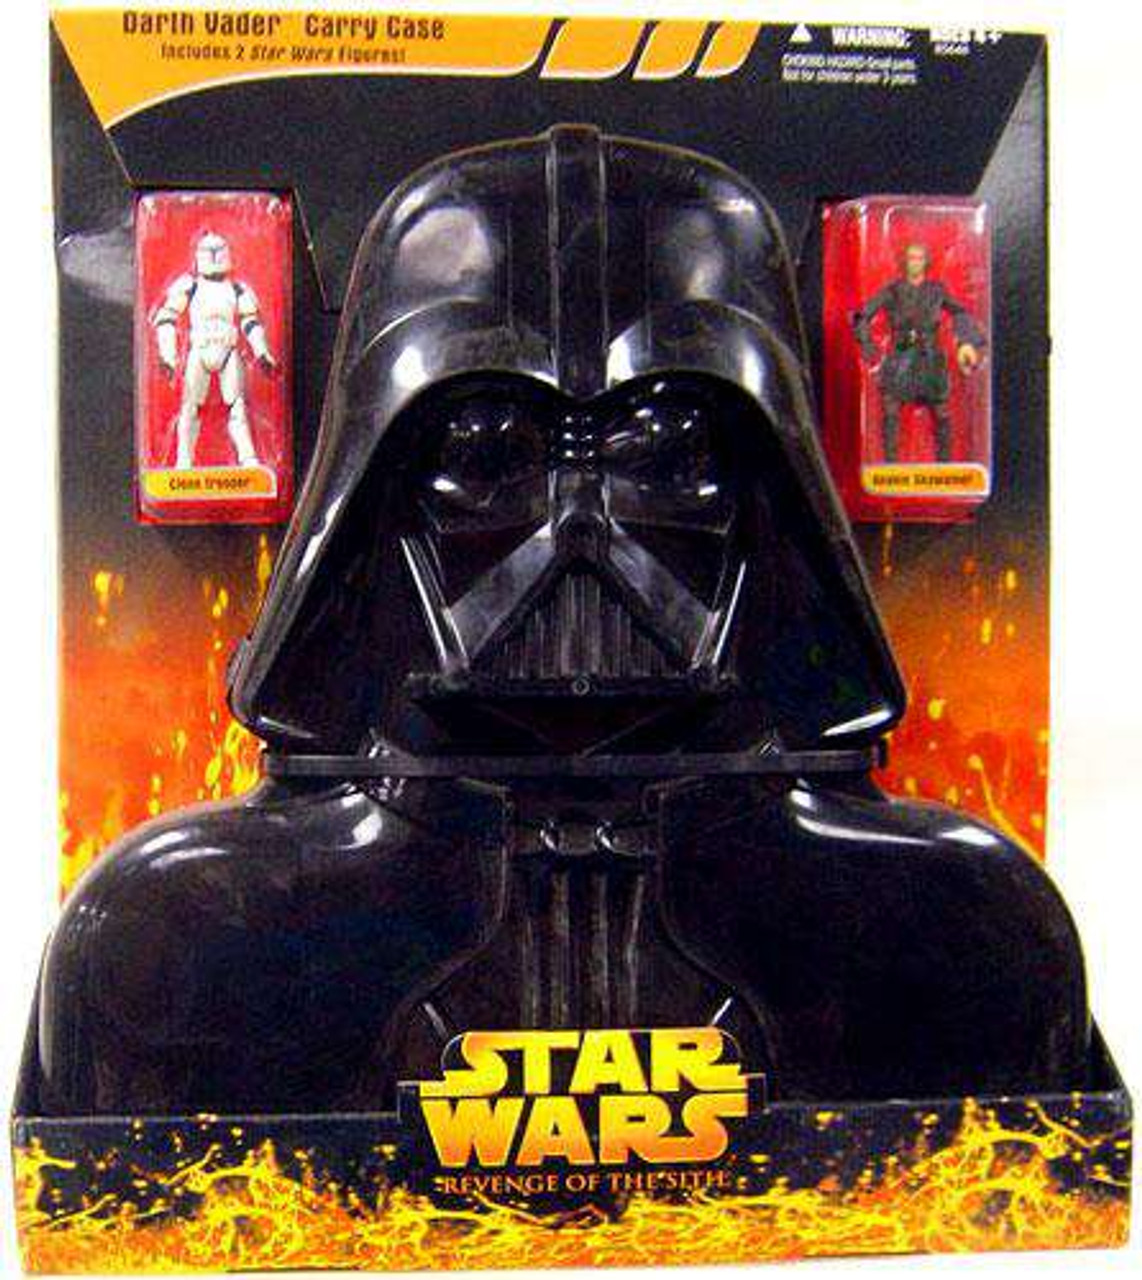 Star Wars Revenge Of The Sith Darth Vader 3 75 Carry Case Damaged Package Hasbro Toys Toywiz